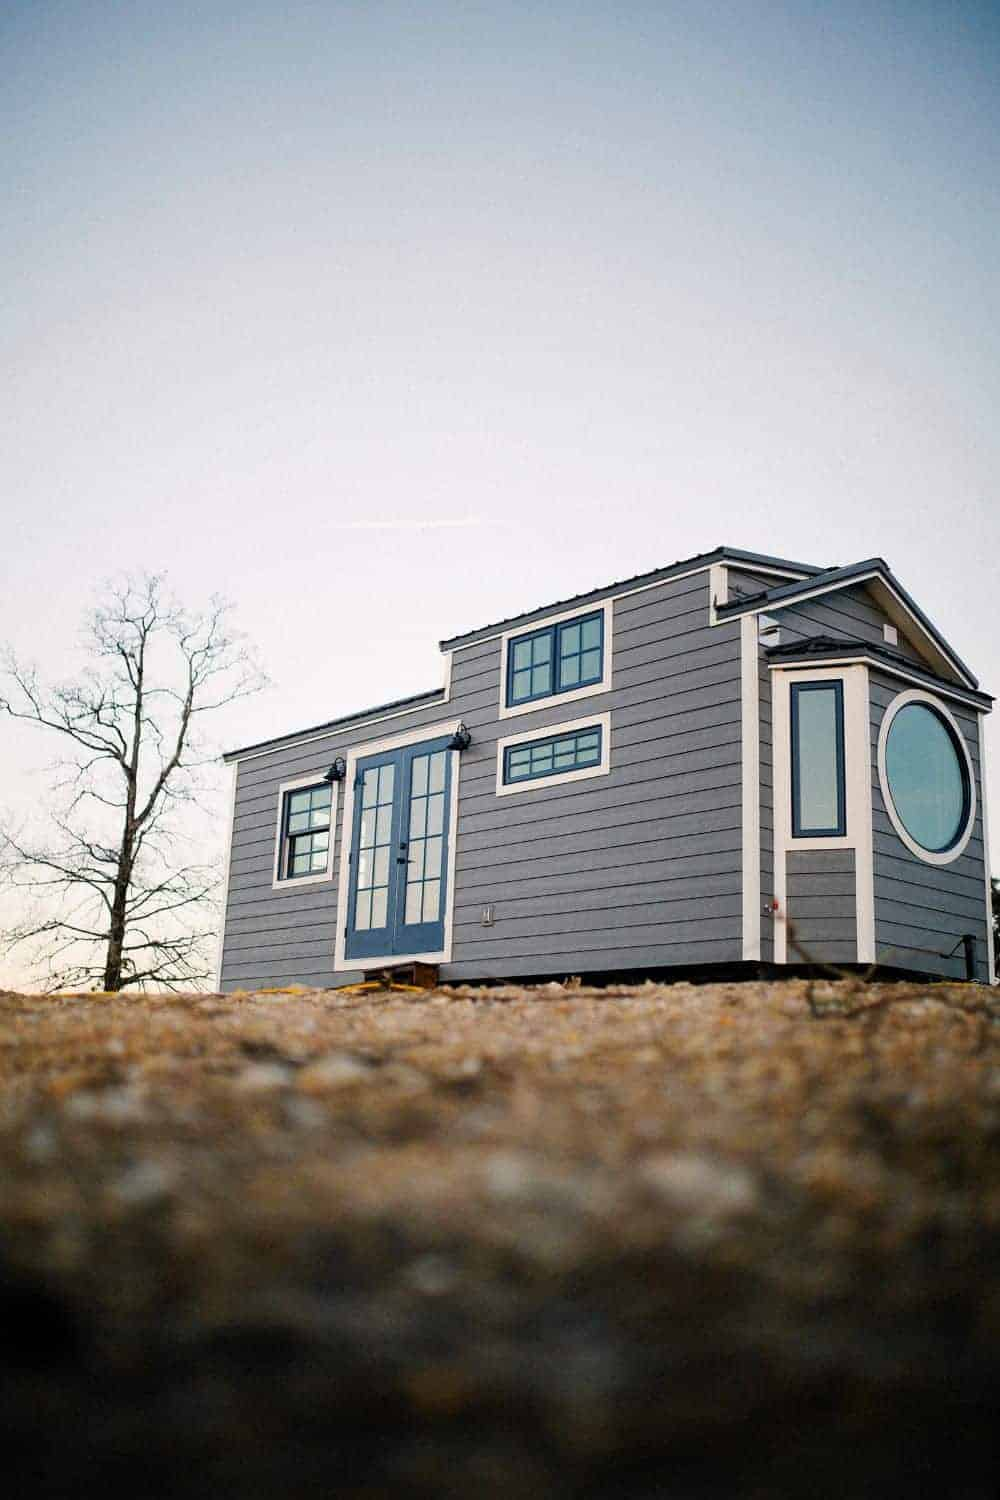 A gray tiny house with a monocle style window.